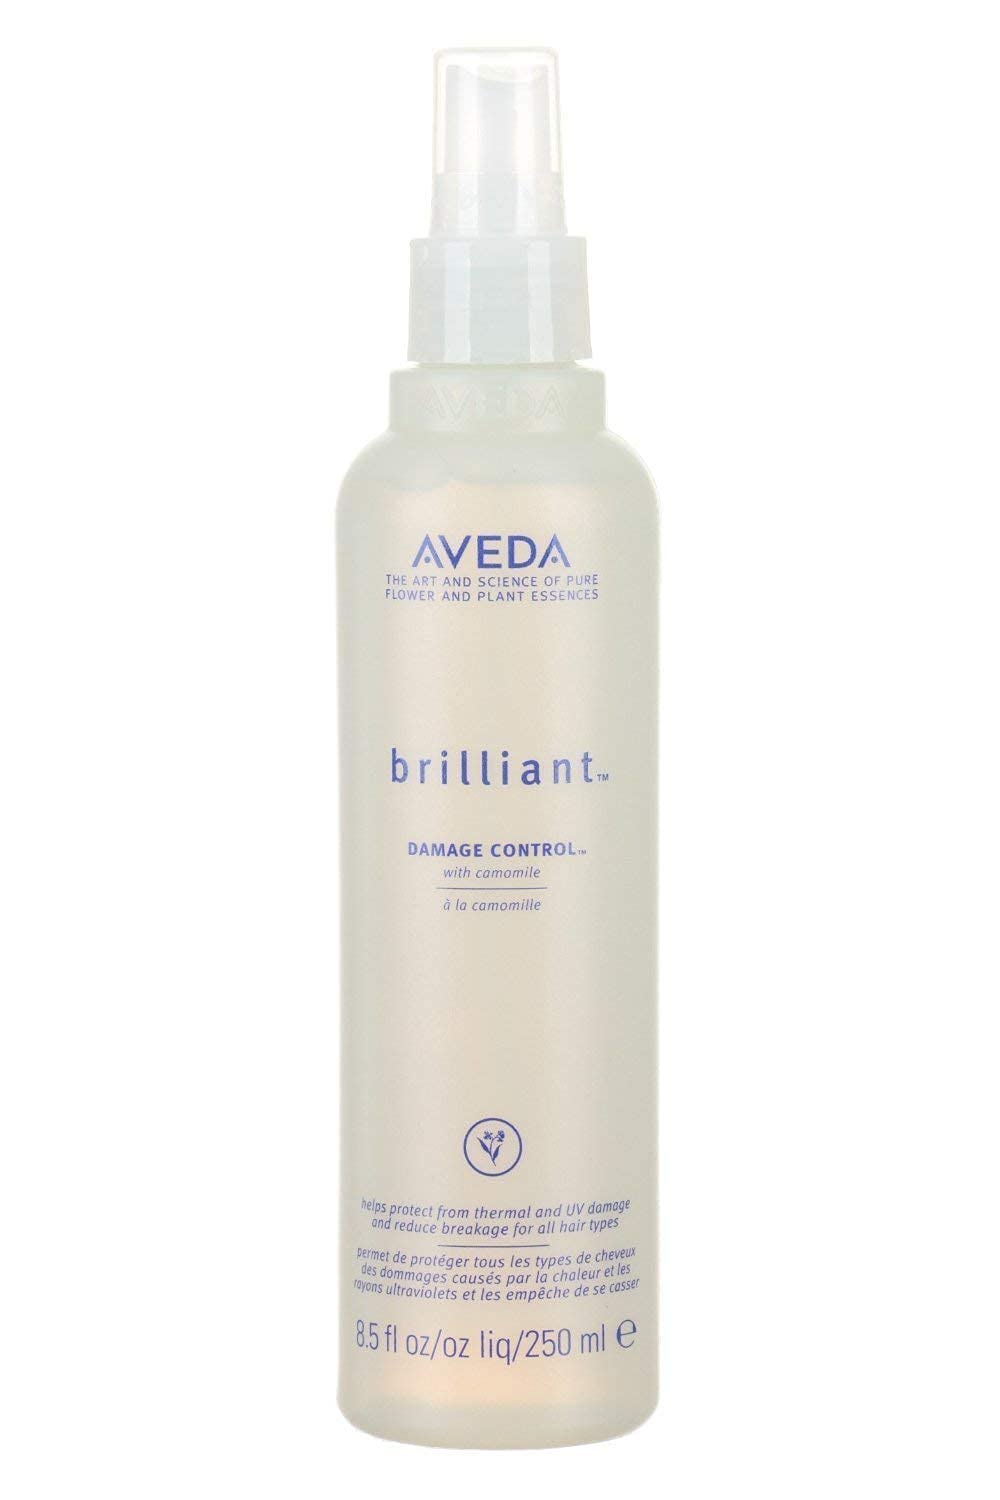 AVEDA Detroit Mall by Aveda Brilliant Damage Control All For Max 42% OFF UV Hair Damaged